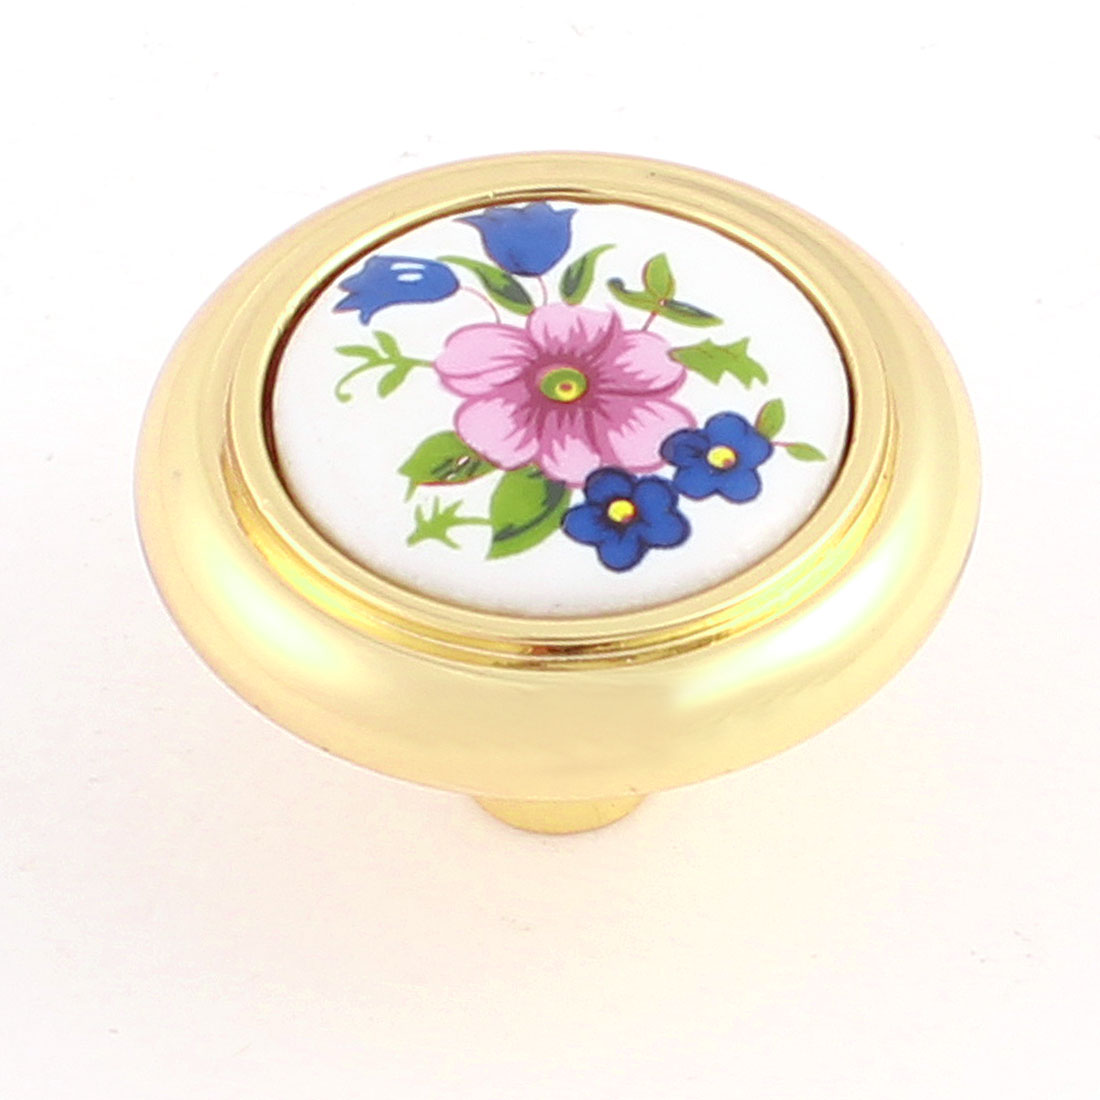 Home Cabinet Furniture Door Floral Pattern Ceramic Knob White Gold Tone